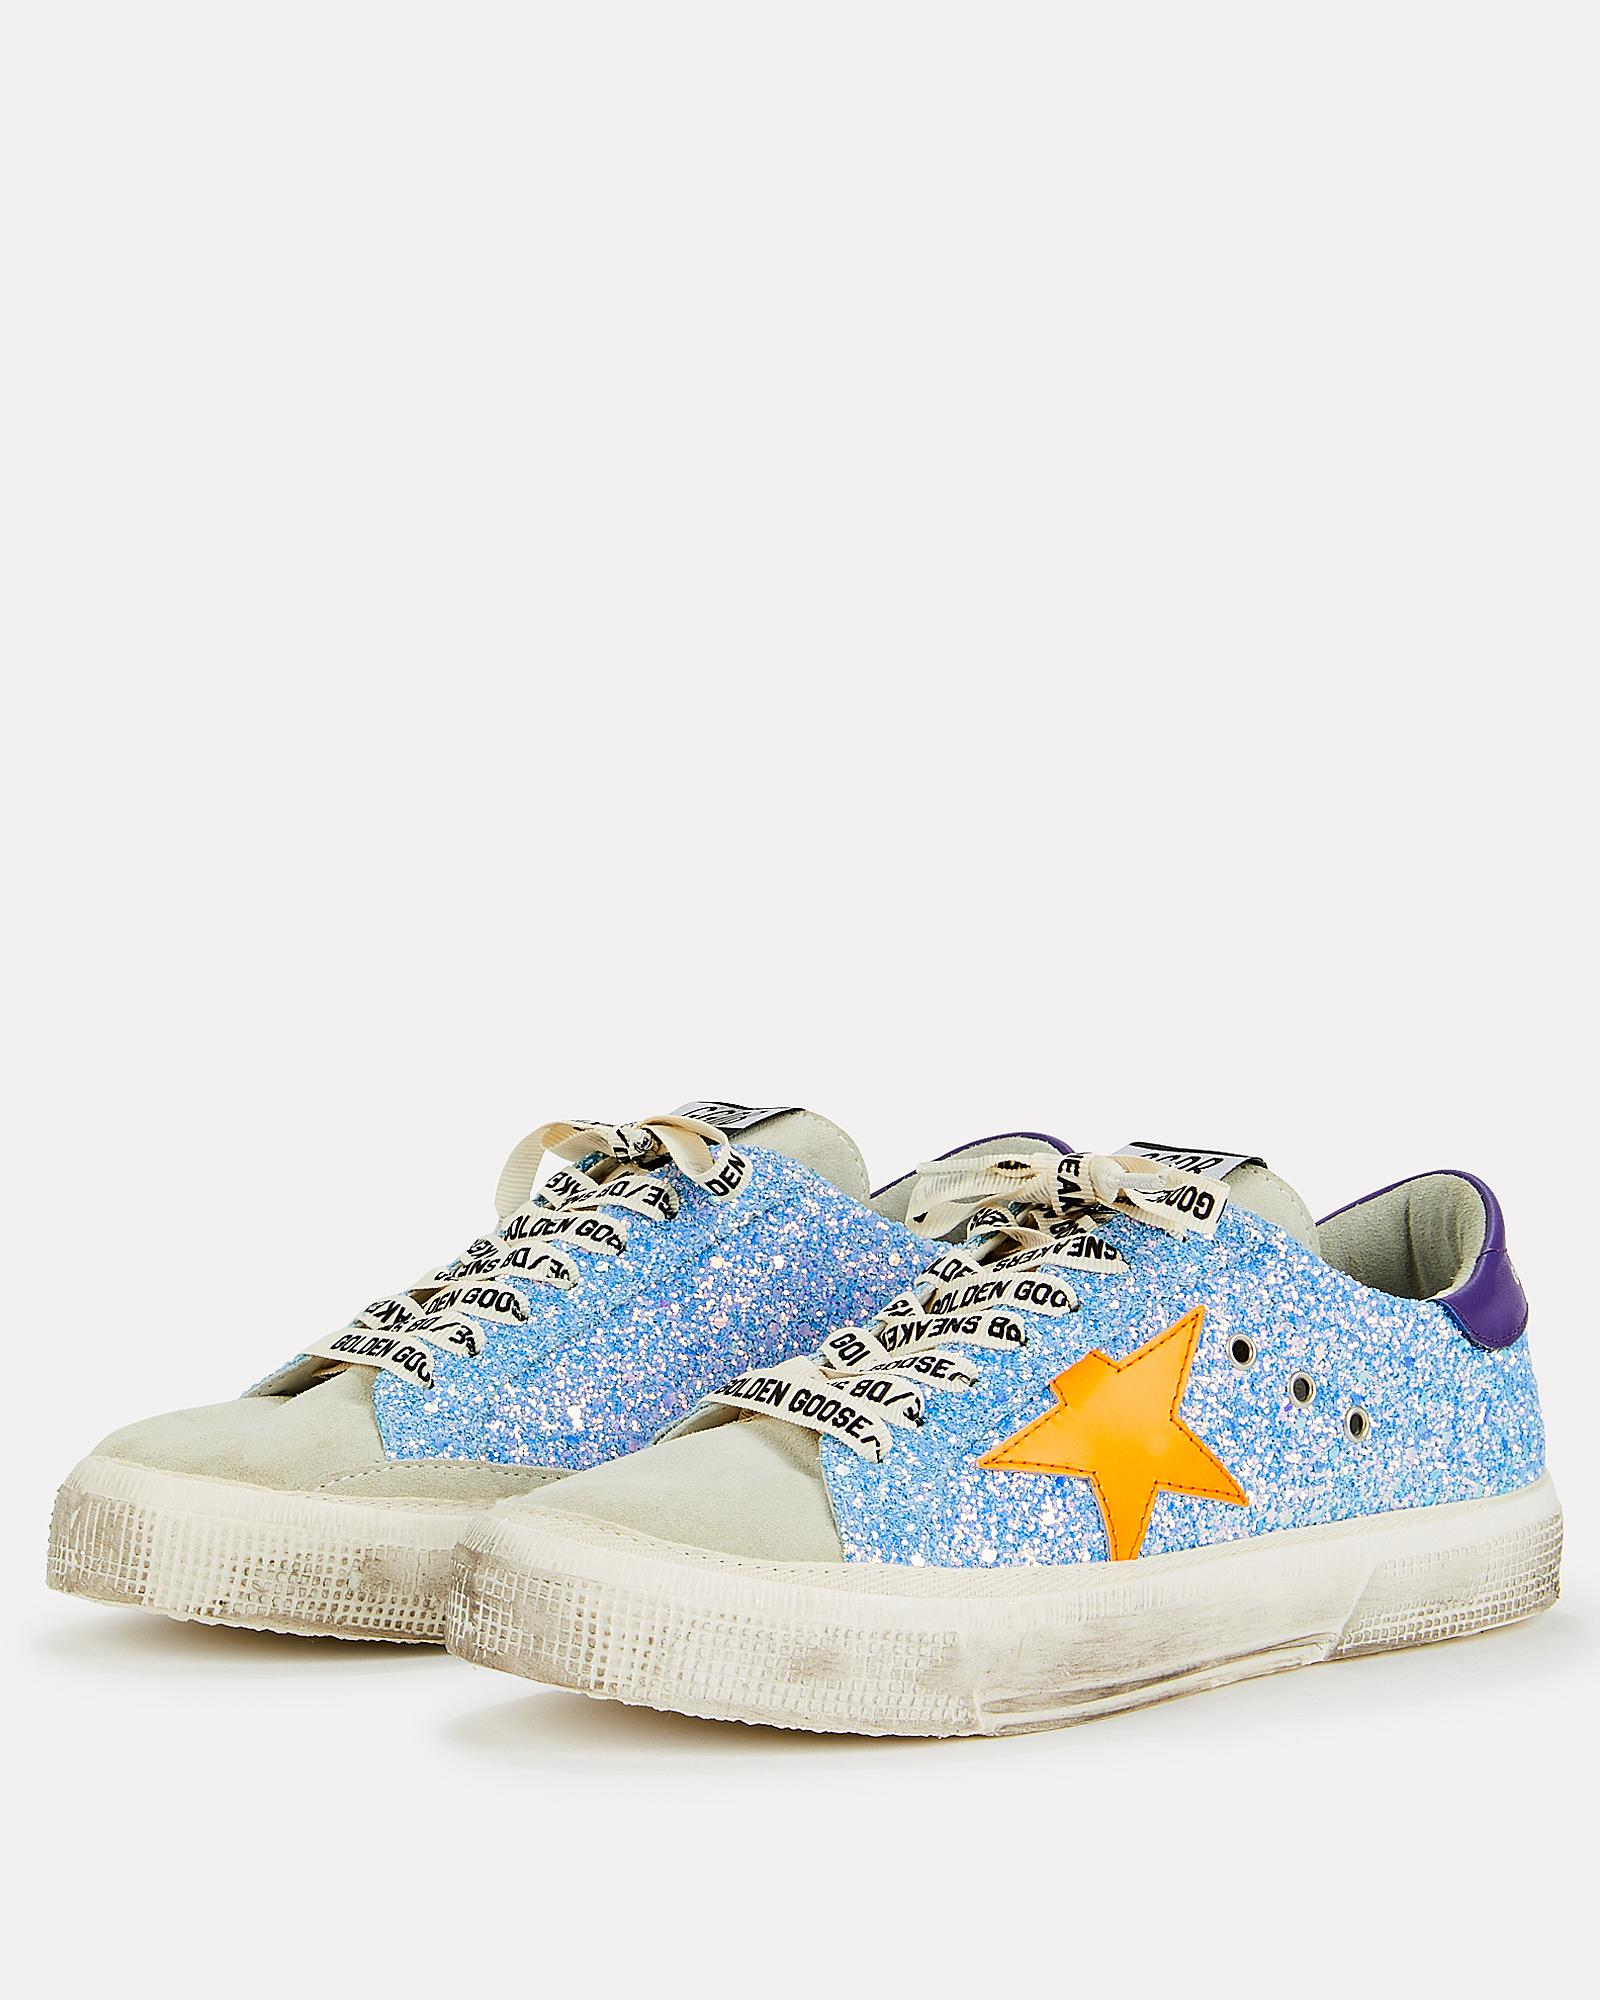 1414caefd15d Golden Goose Deluxe Brand - Blue May Orange Star Glitter Low-top Sneakers -  Lyst. View fullscreen